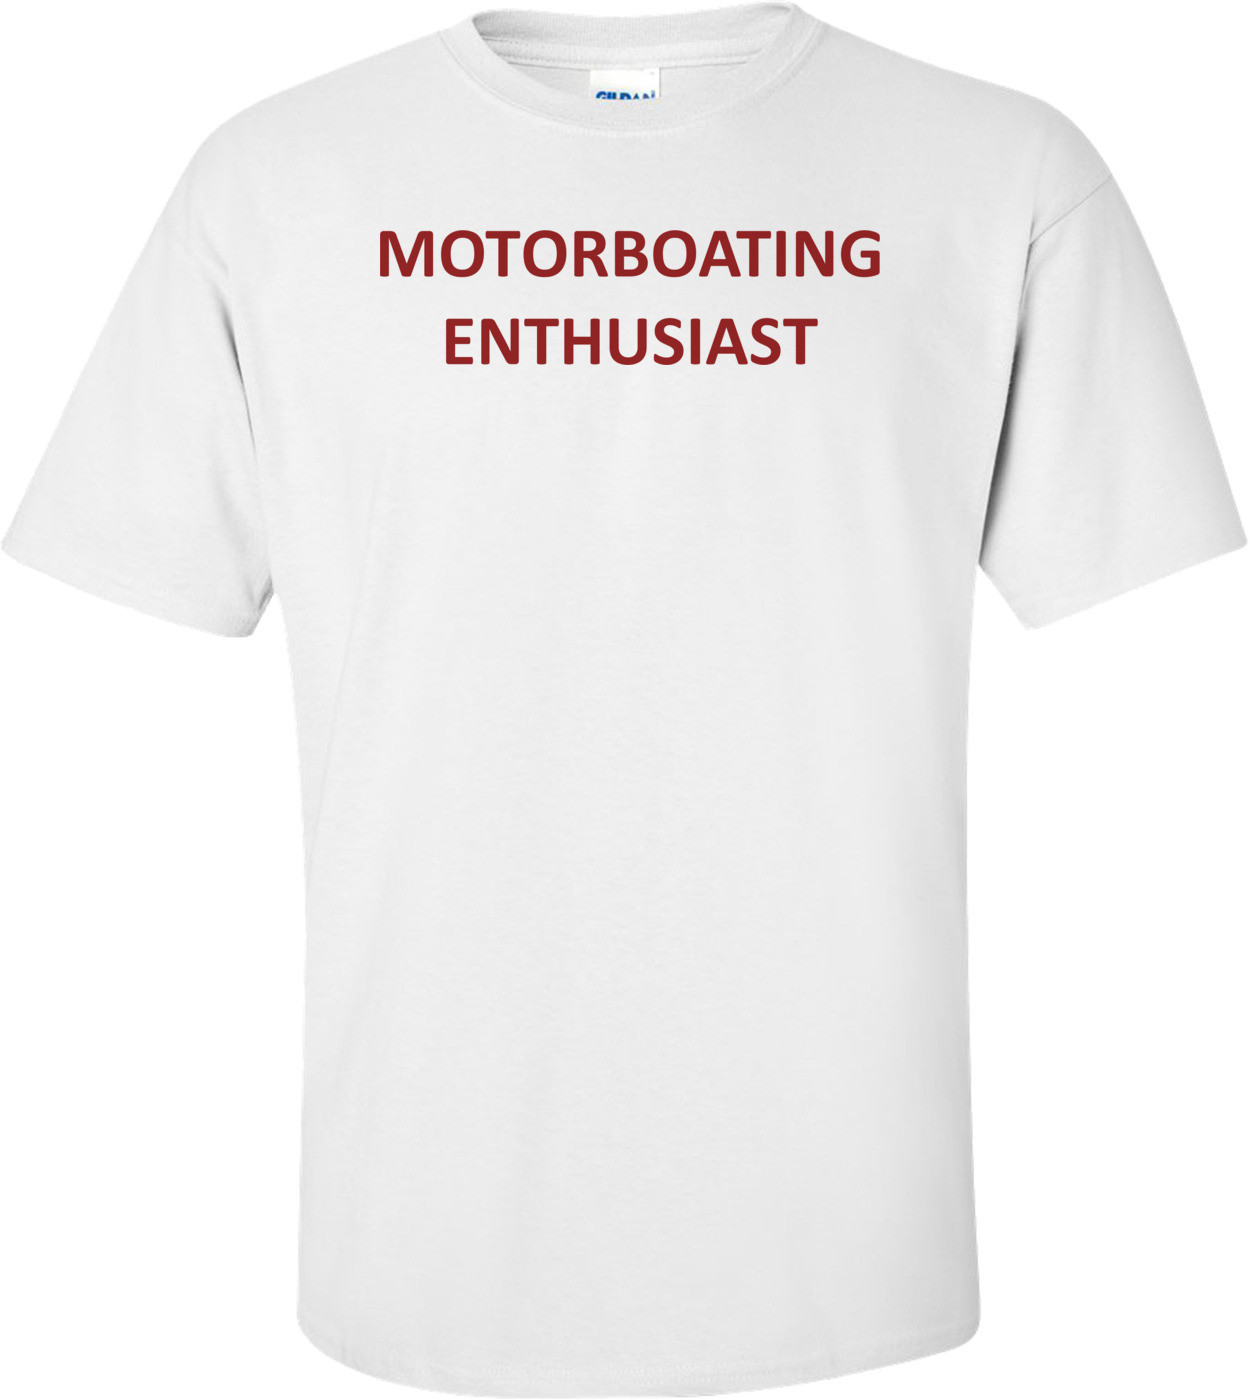 MOTORBOATING ENTHUSIAST Shirt